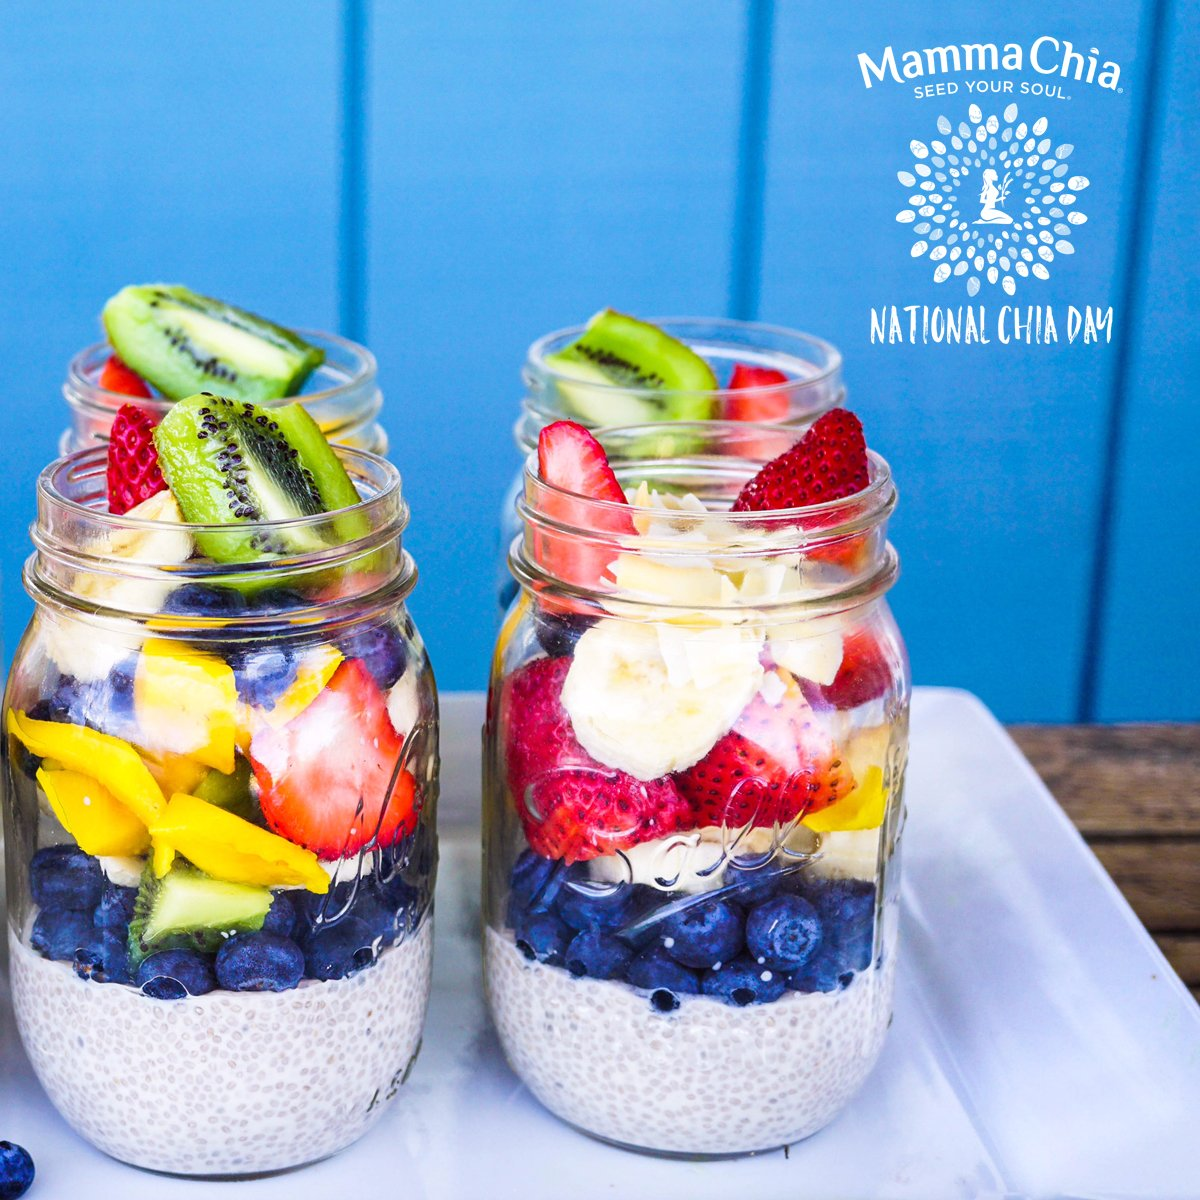 #NationalChiaDay #Giveaway!! RT for a chance to win $50 supply of @MammaChia! Photo by @EarthyAndie https://t.co/rnsOf84rJH